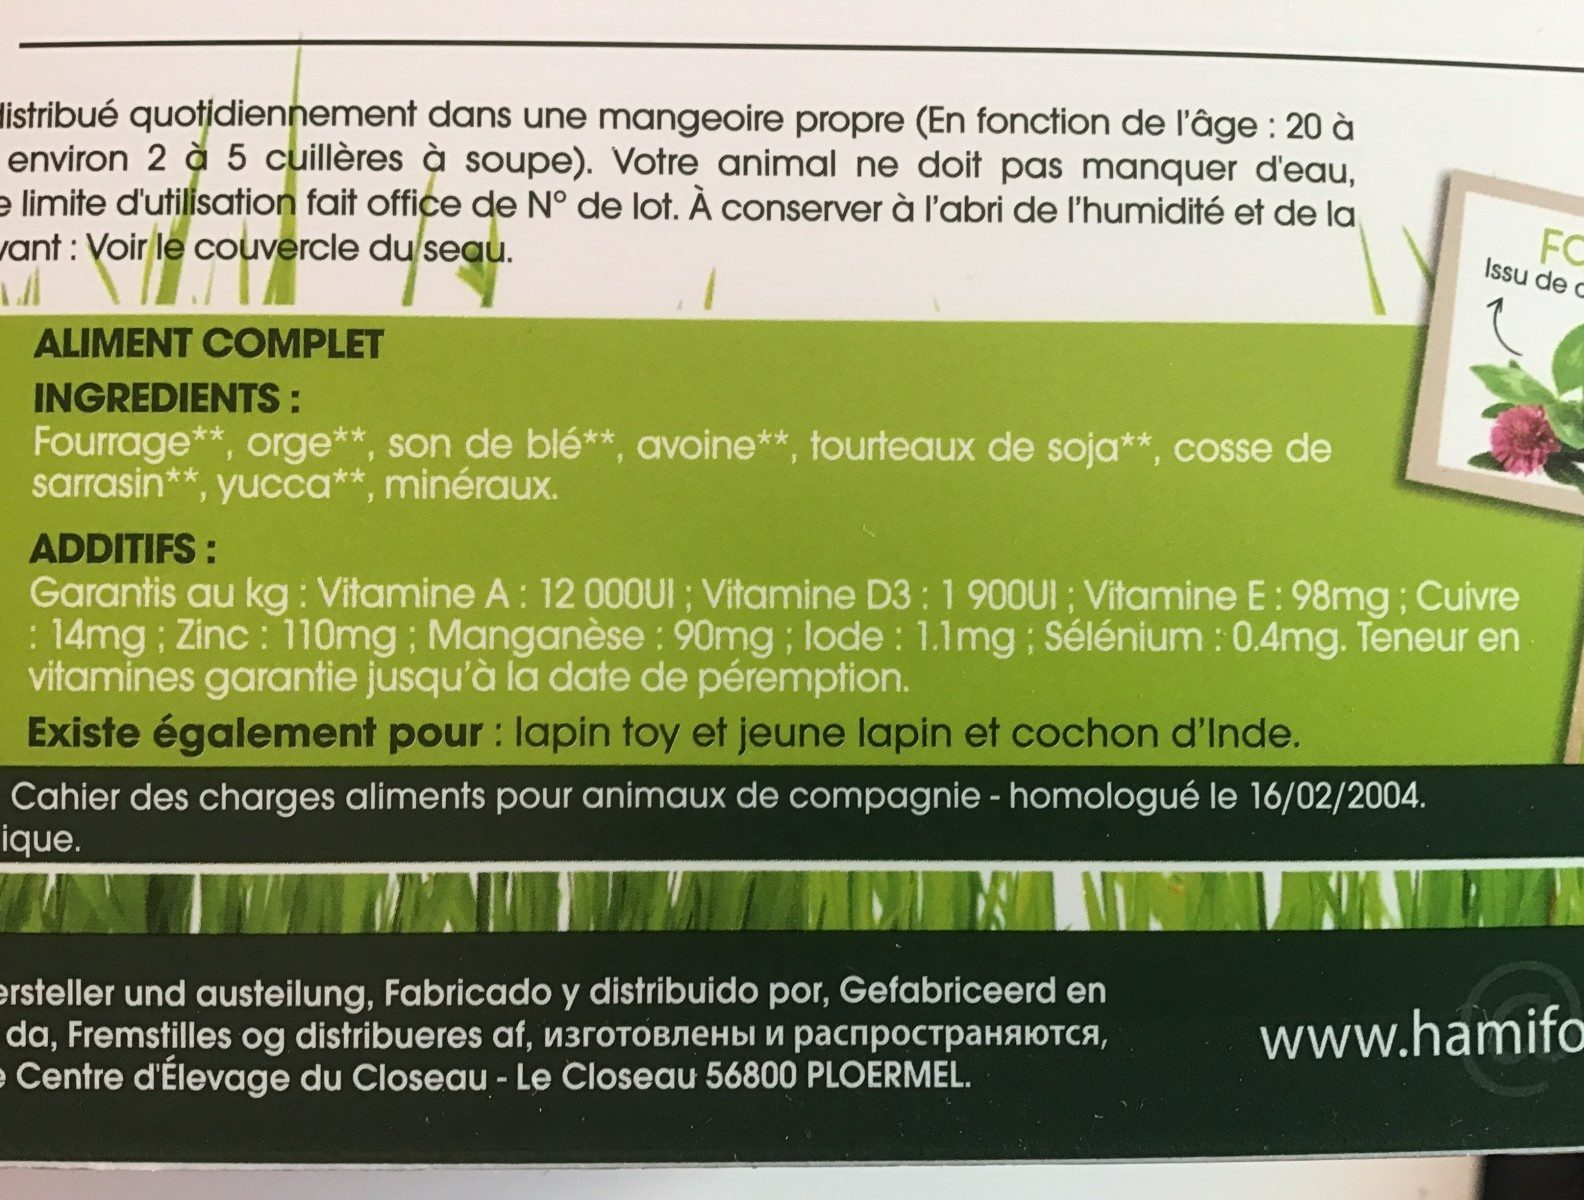 Repas complet pour lapin nain - Ingredients